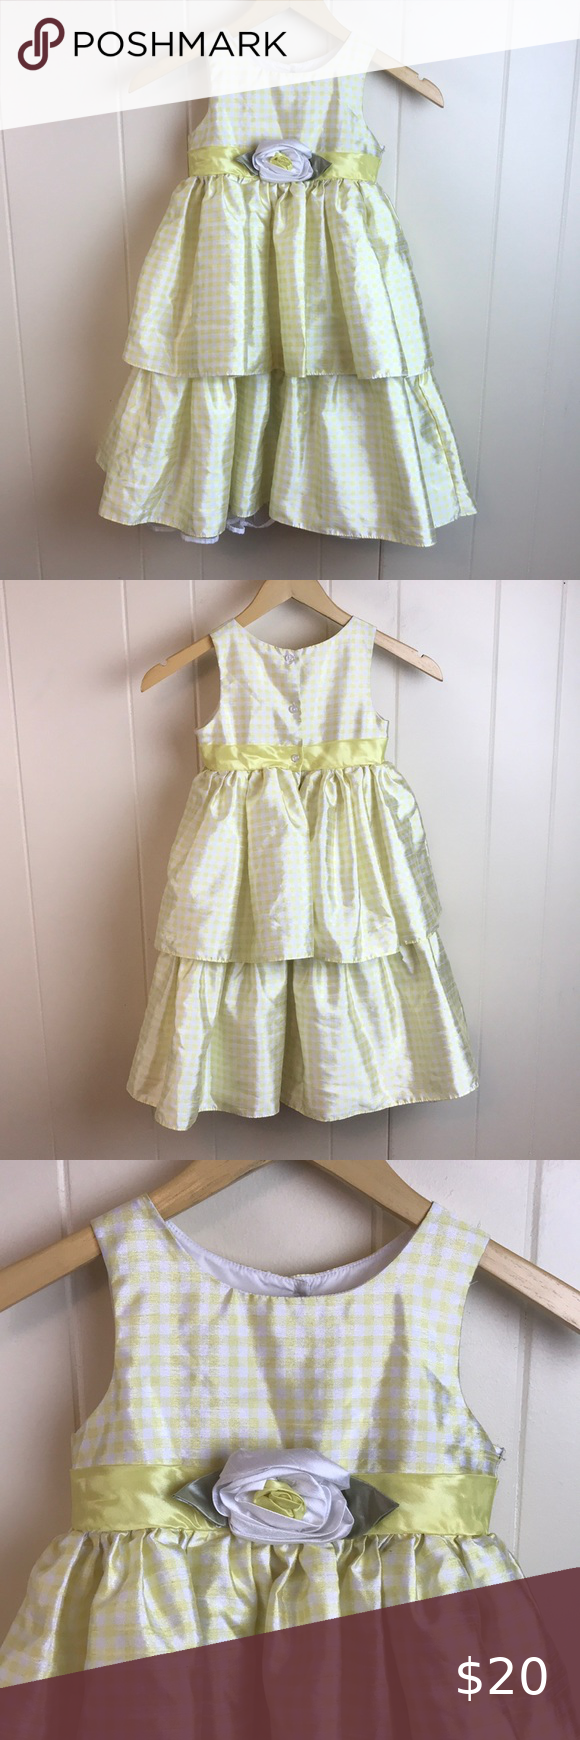 Cherokee Girls Tiered Checkered Party Dress Little Girl Dresses Girls Tulle Dress Party Dress [ 1740 x 580 Pixel ]